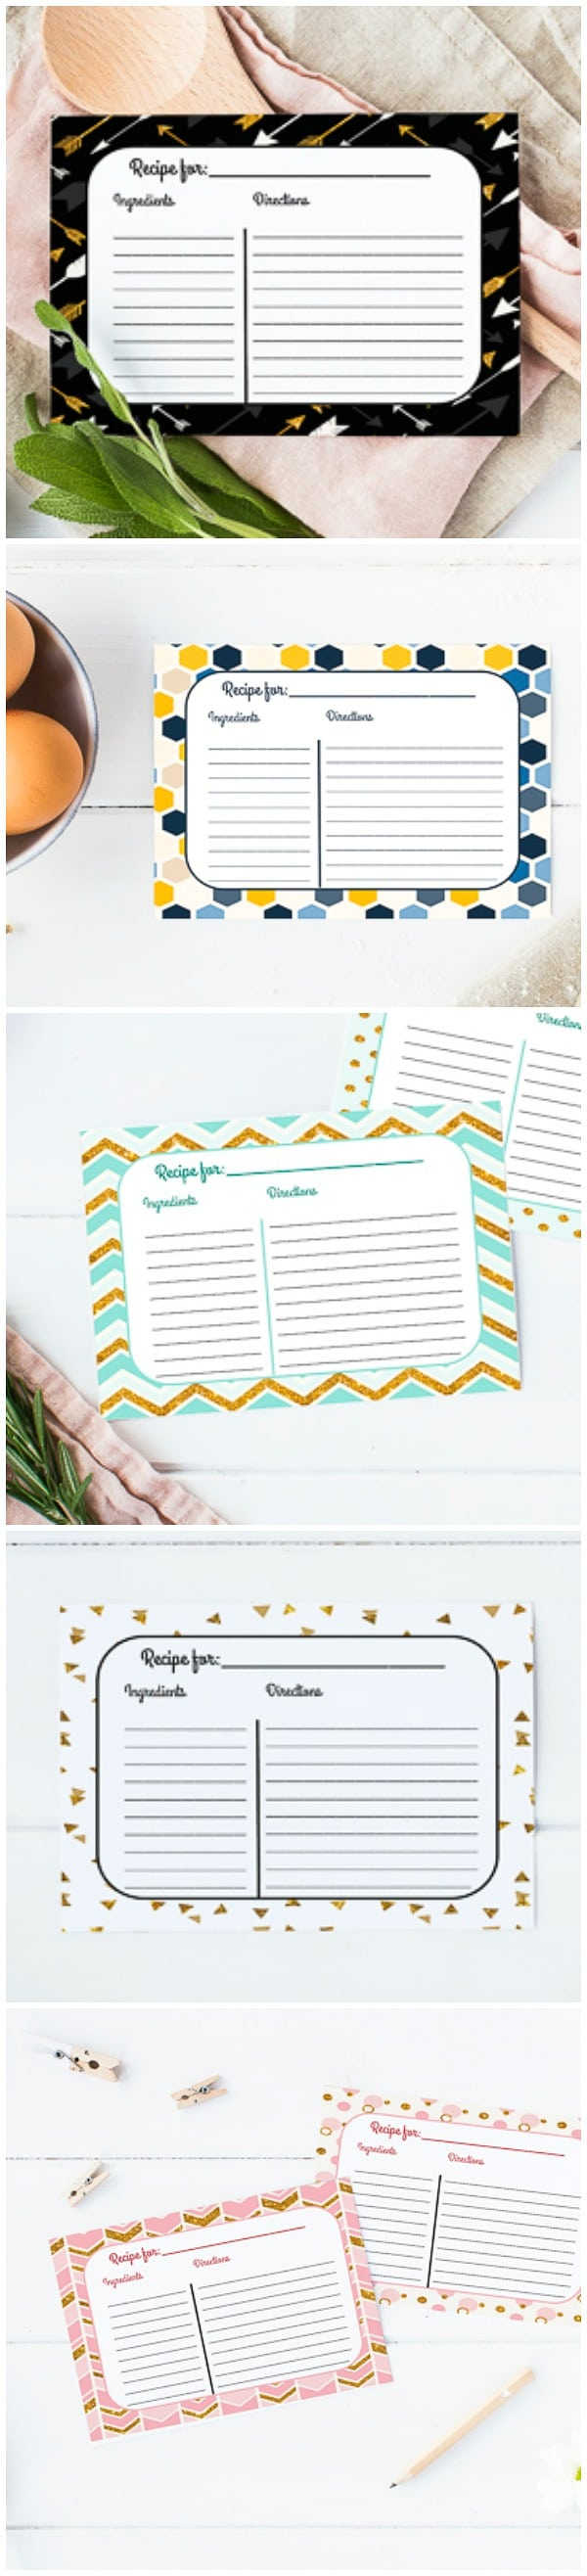 Free Printable Recipe Cards -Keep all of your favorite recipes safe and organized with these Free Printable Recipe Cards, in 5 different colors and designs.